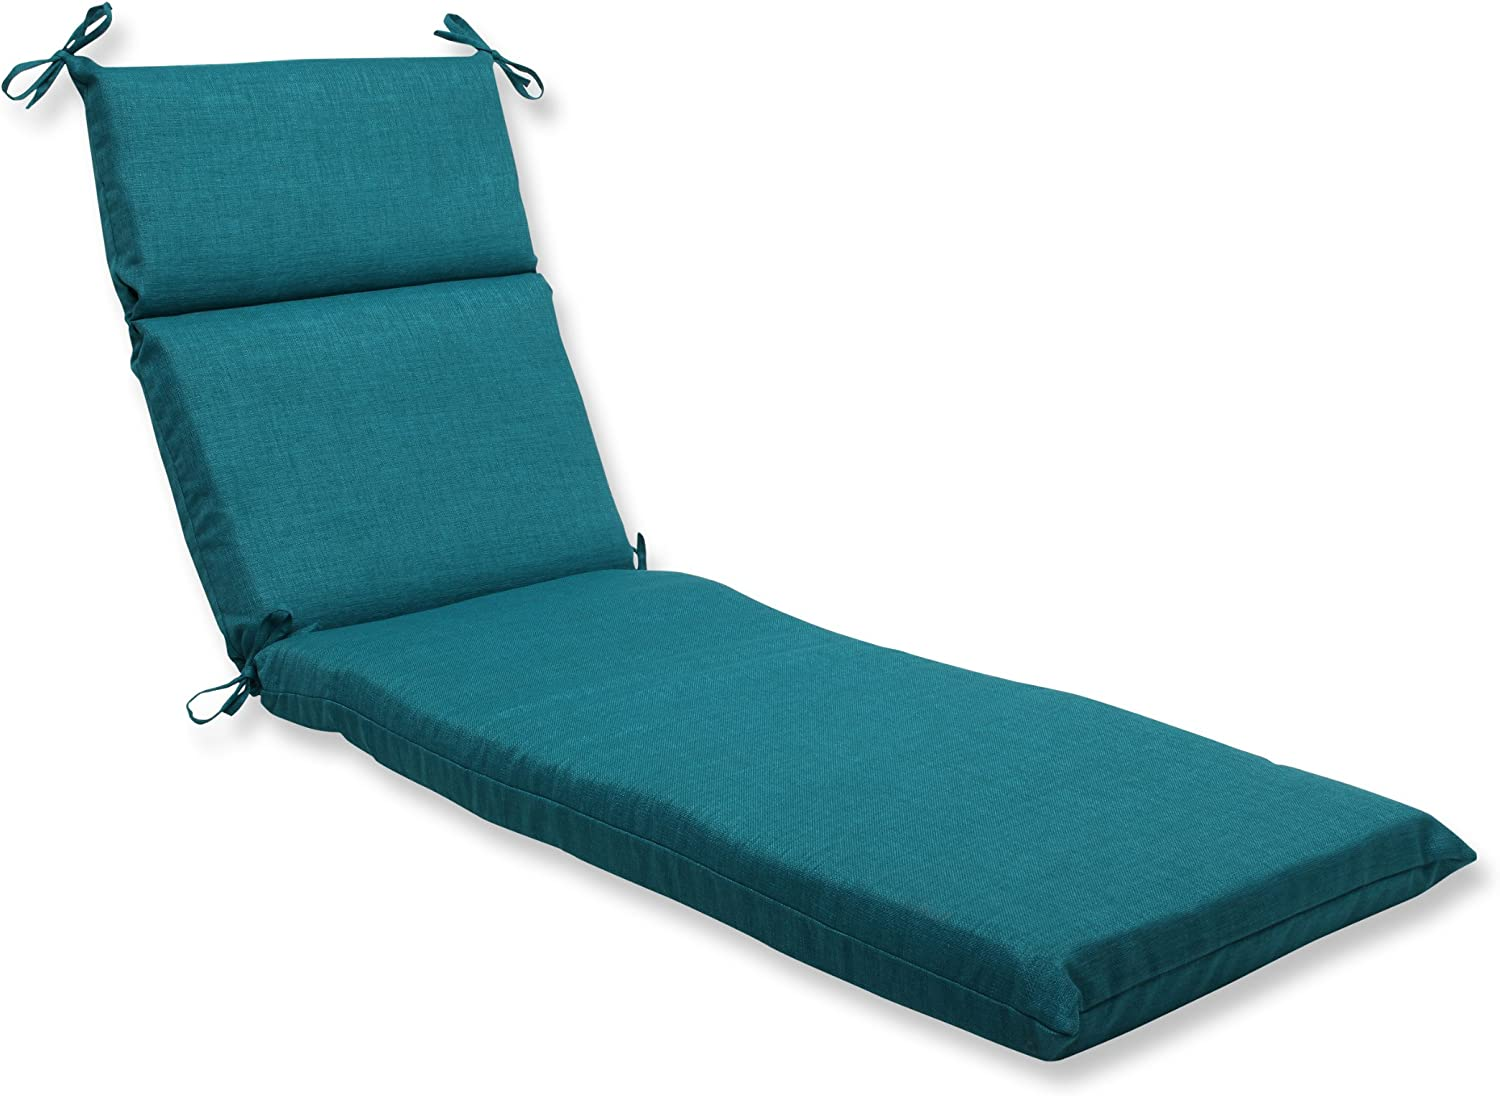 - Amazon.com: Pillow Perfect Outdoor Rave Teal Chaise Lounge Cushion